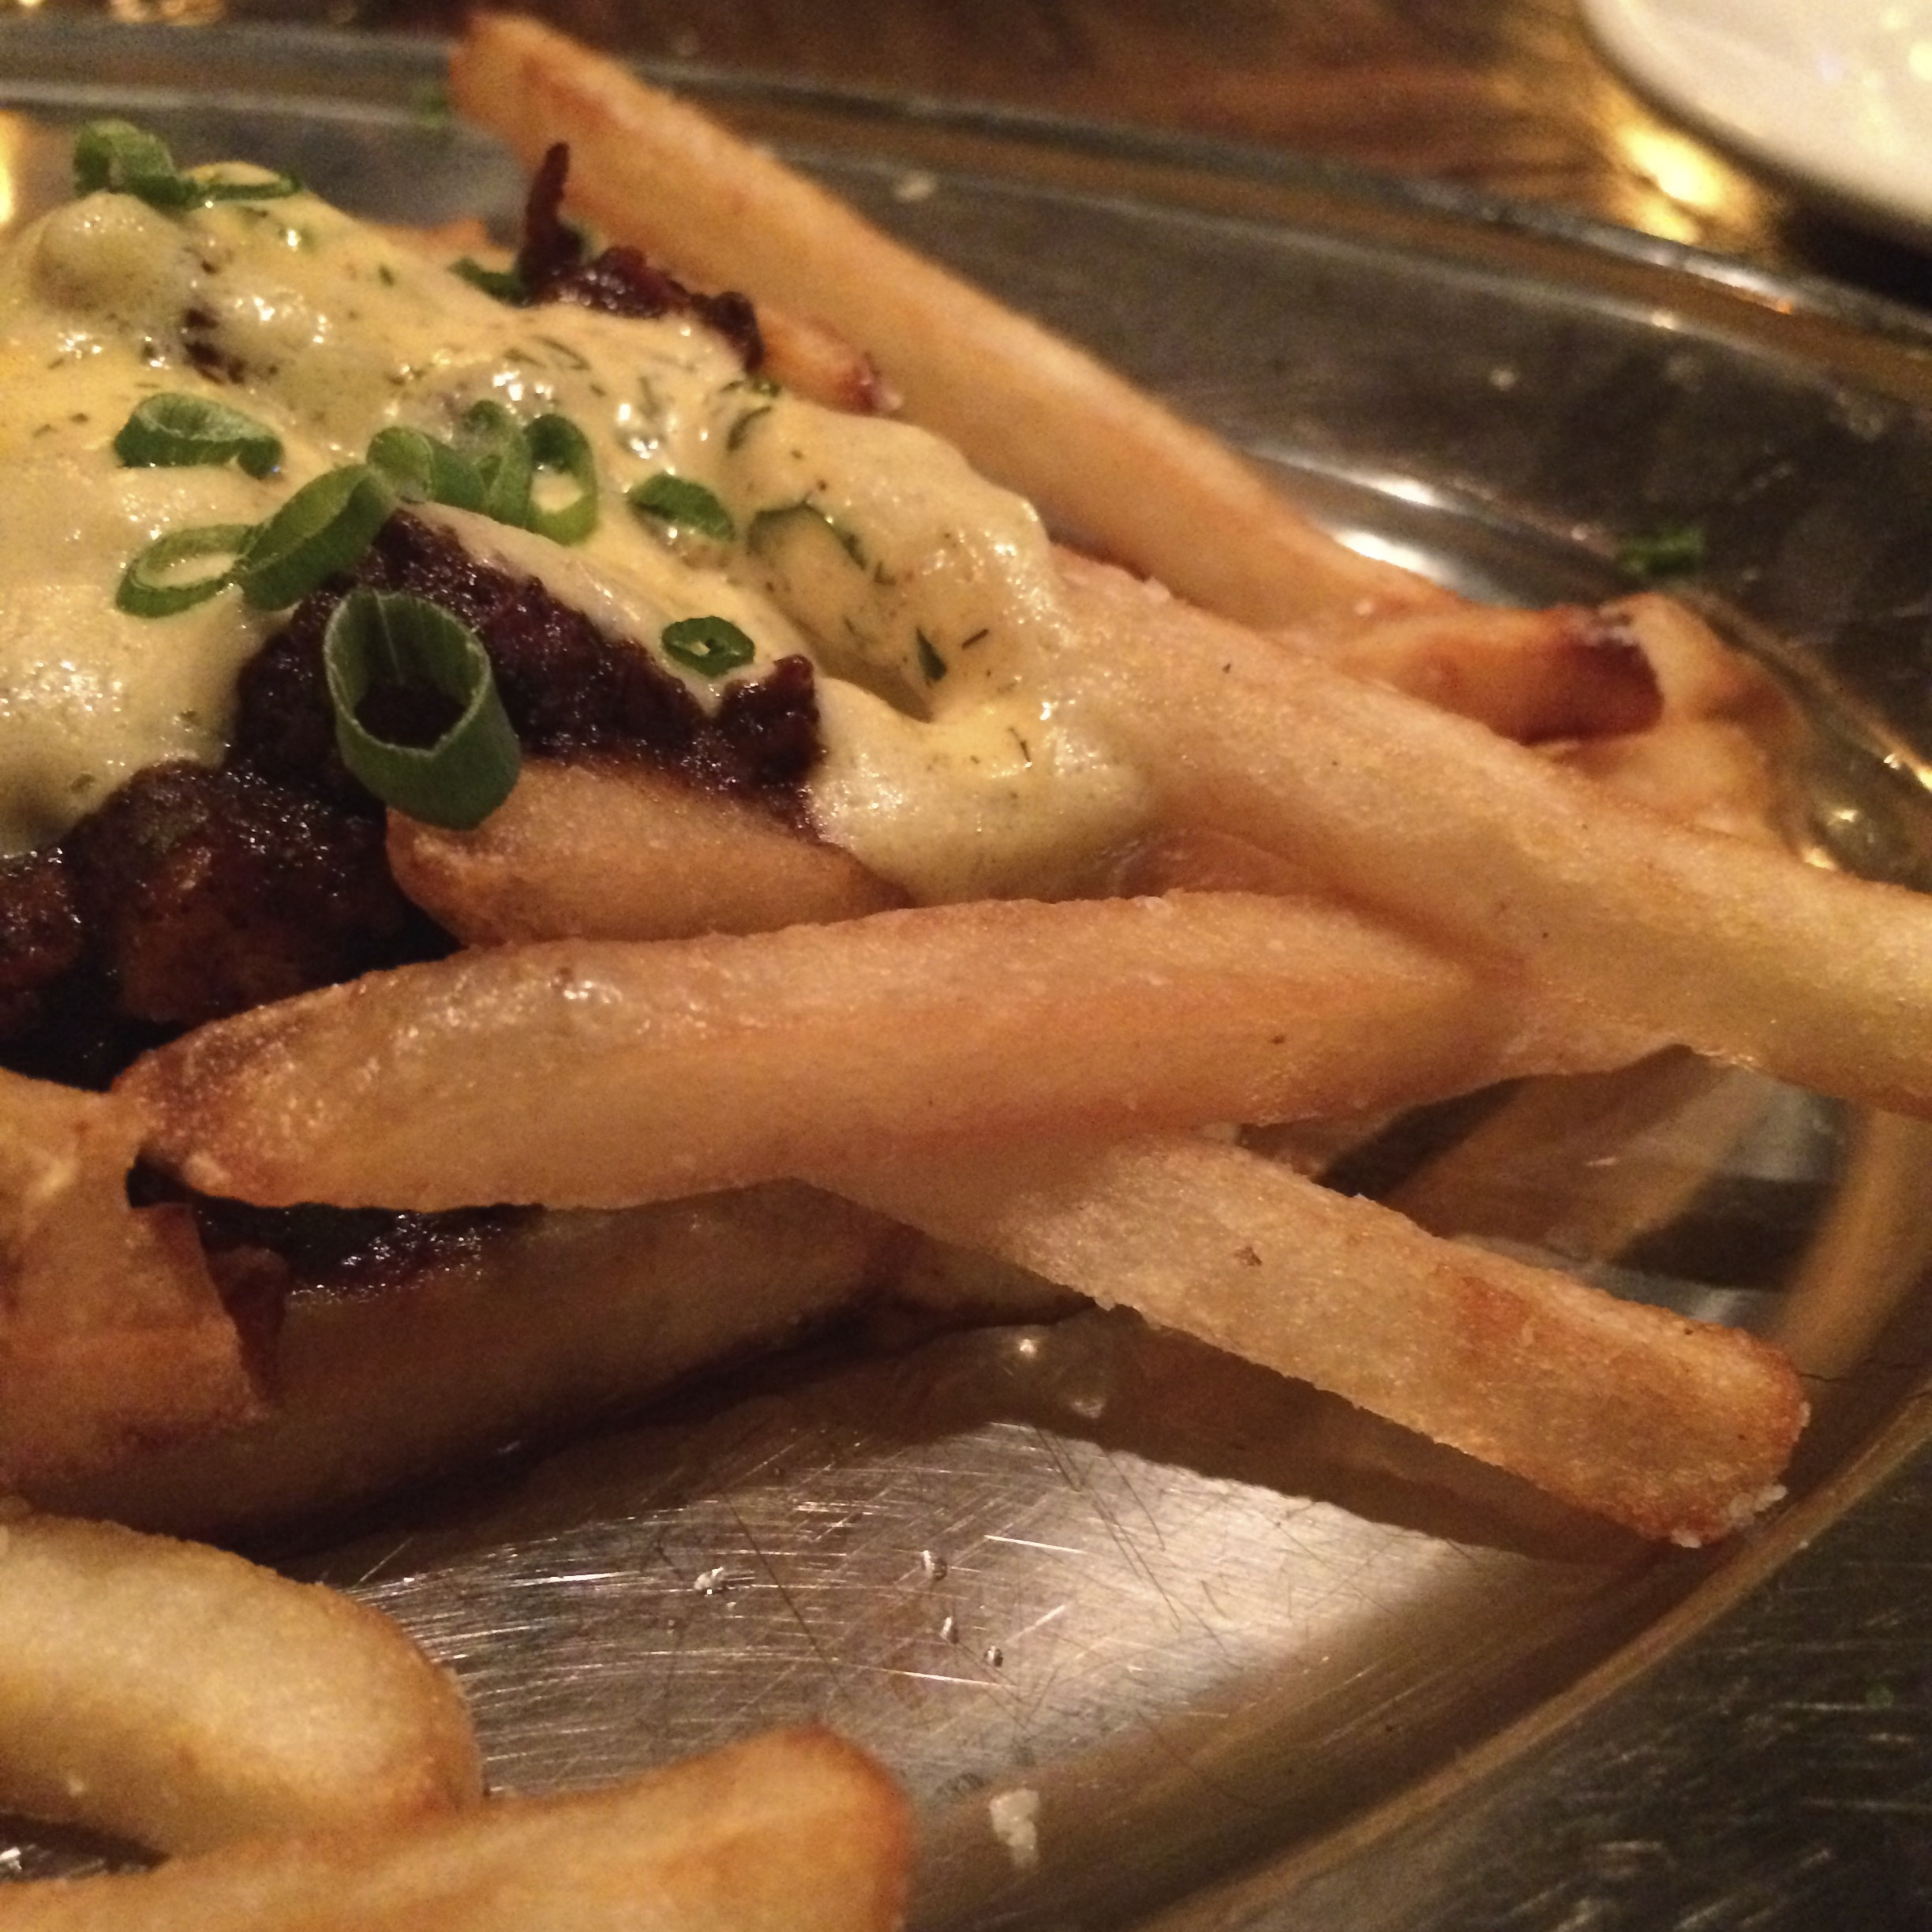 Train wreck fries were a highlight of the meal.